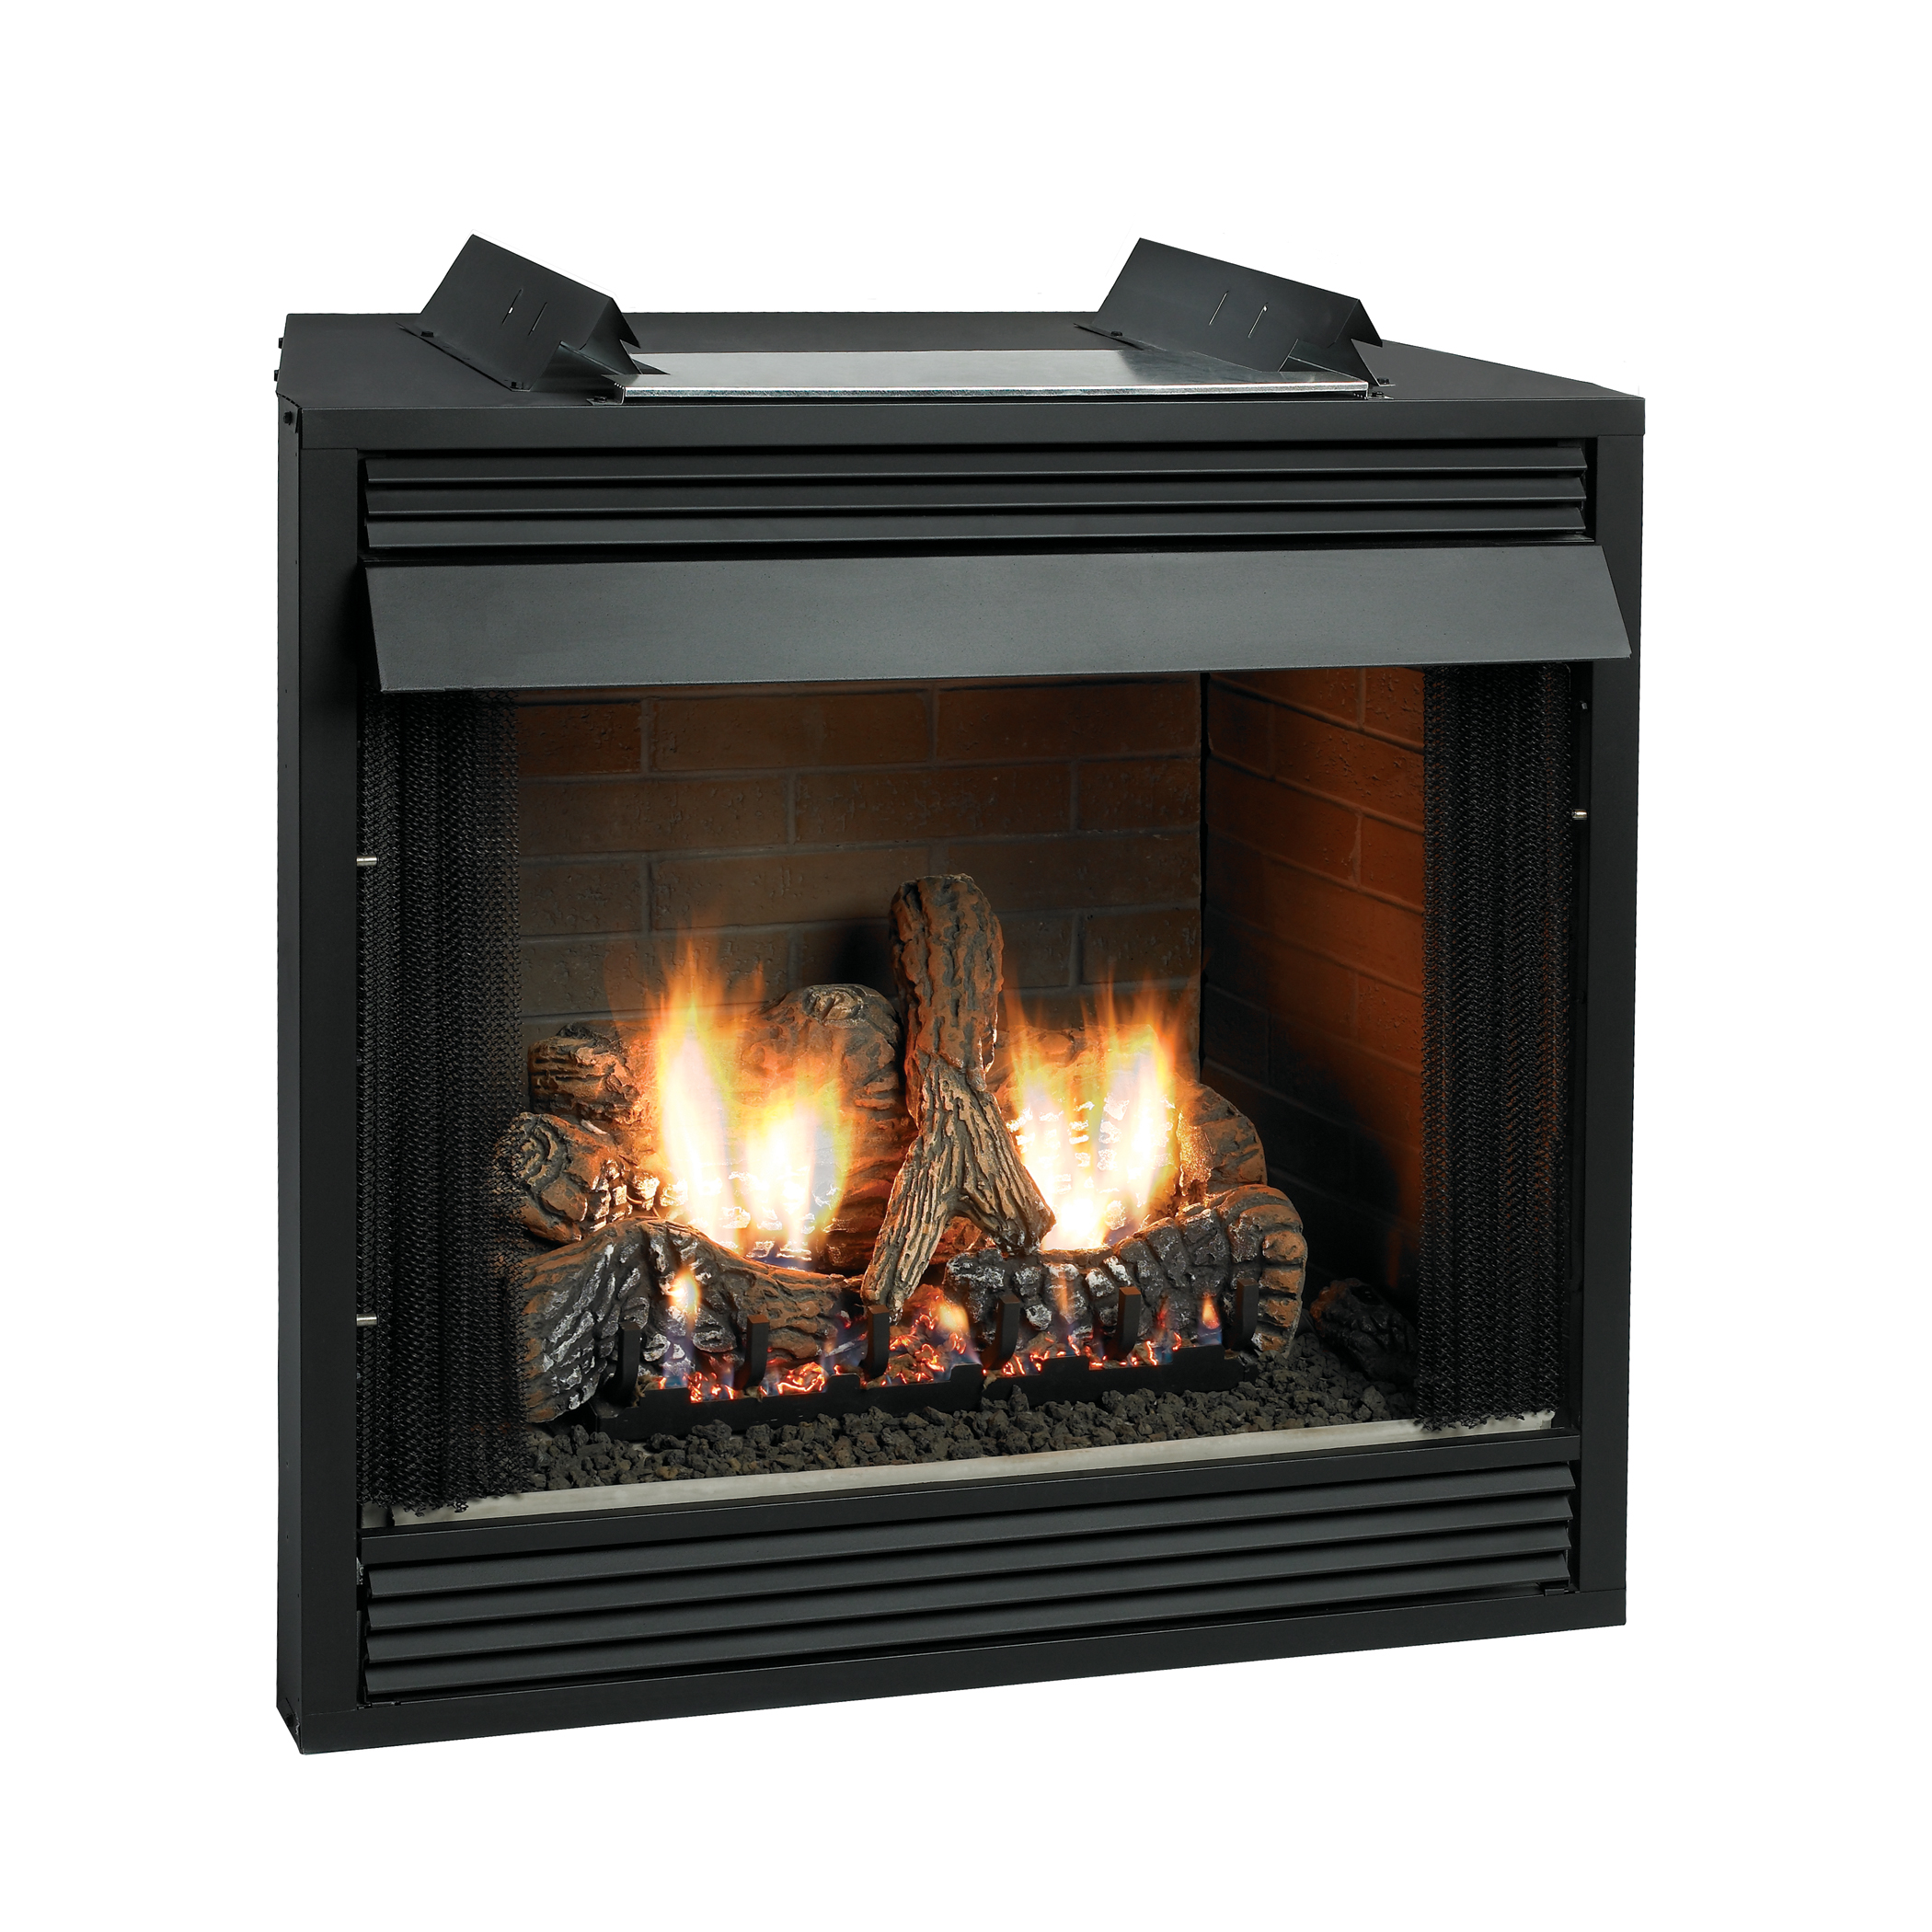 anywhere indoor fireplace roomsetting products empire fire outdoor plaza pit